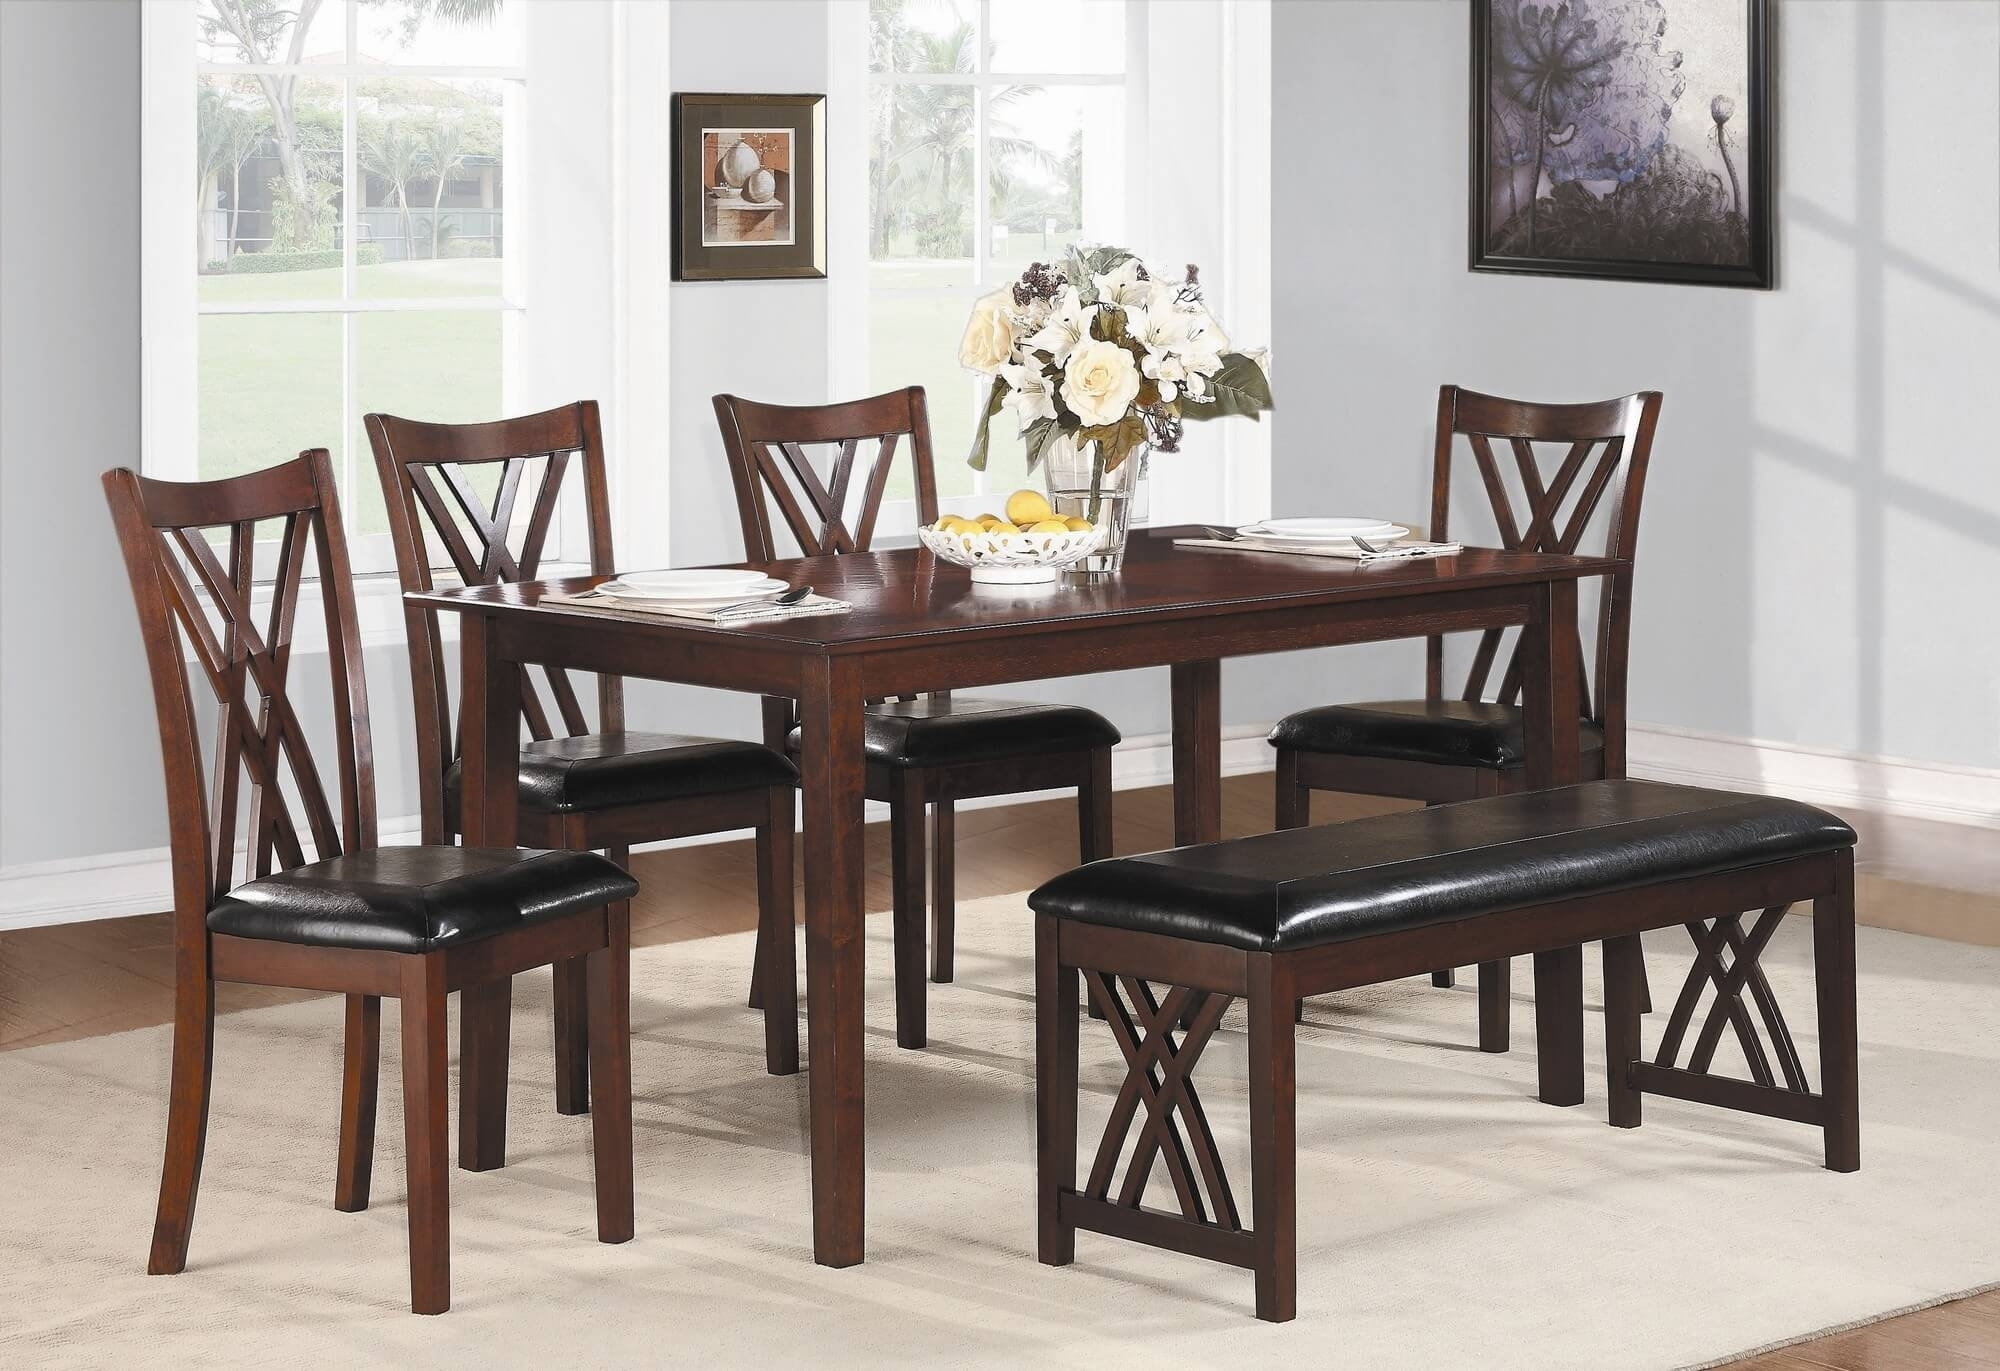 26 Dining Room Sets (Big And Small) With Bench Seating (2018) Intended For Best And Newest Market 6 Piece Dining Sets With Side Chairs (Photo 18 of 20)